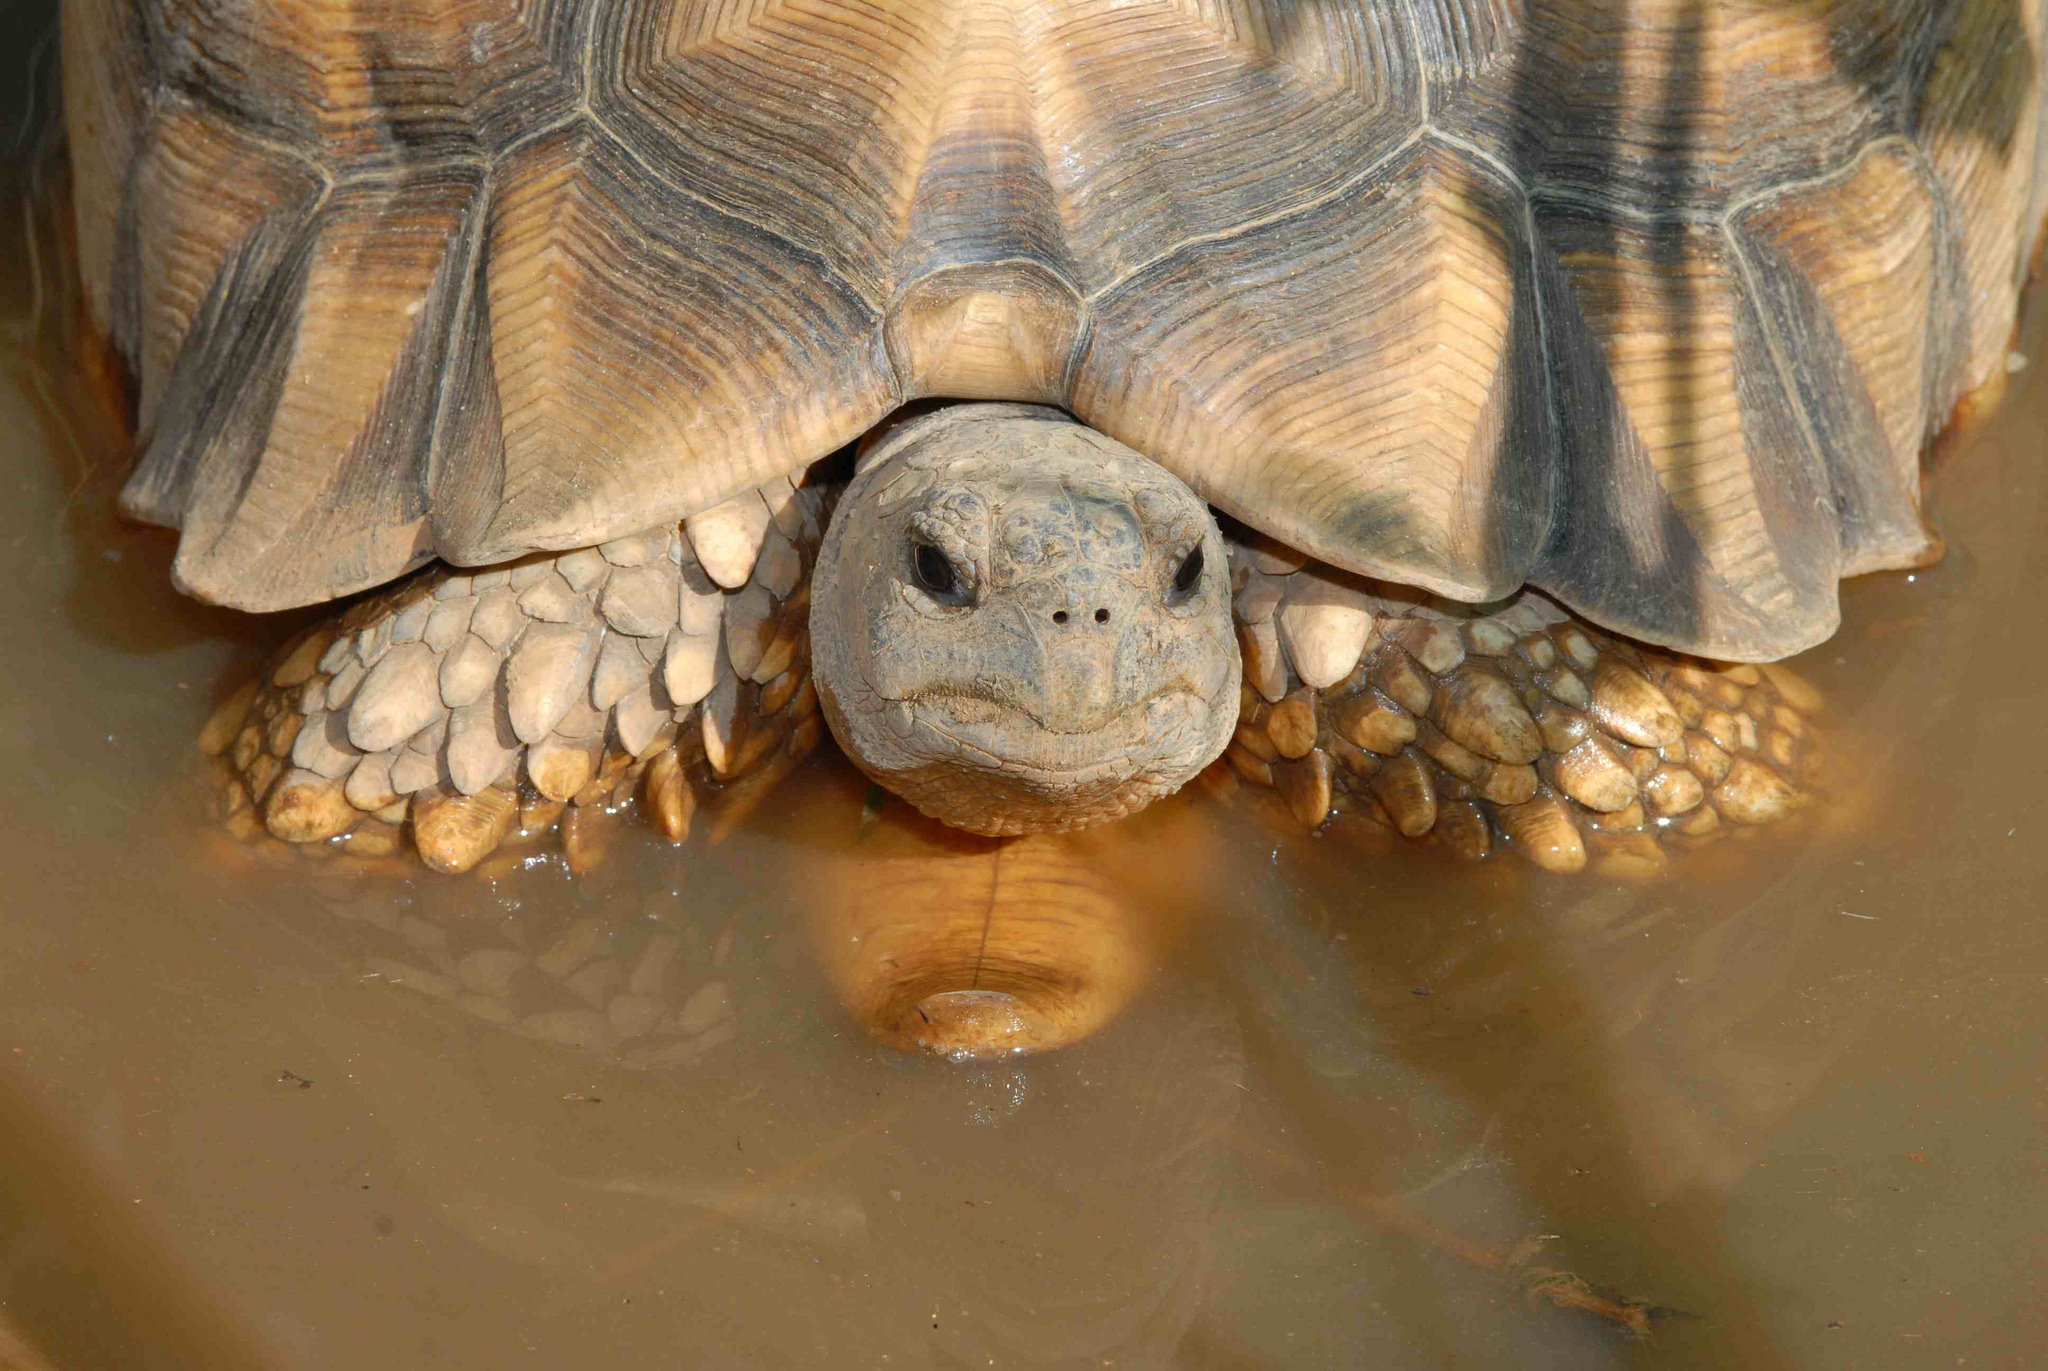 poaching of the ploughshare tortoise has reached its peak over the last year, conservationists warn. Photo by Peter Paul van Dijk/Global Wildlife Conservation.